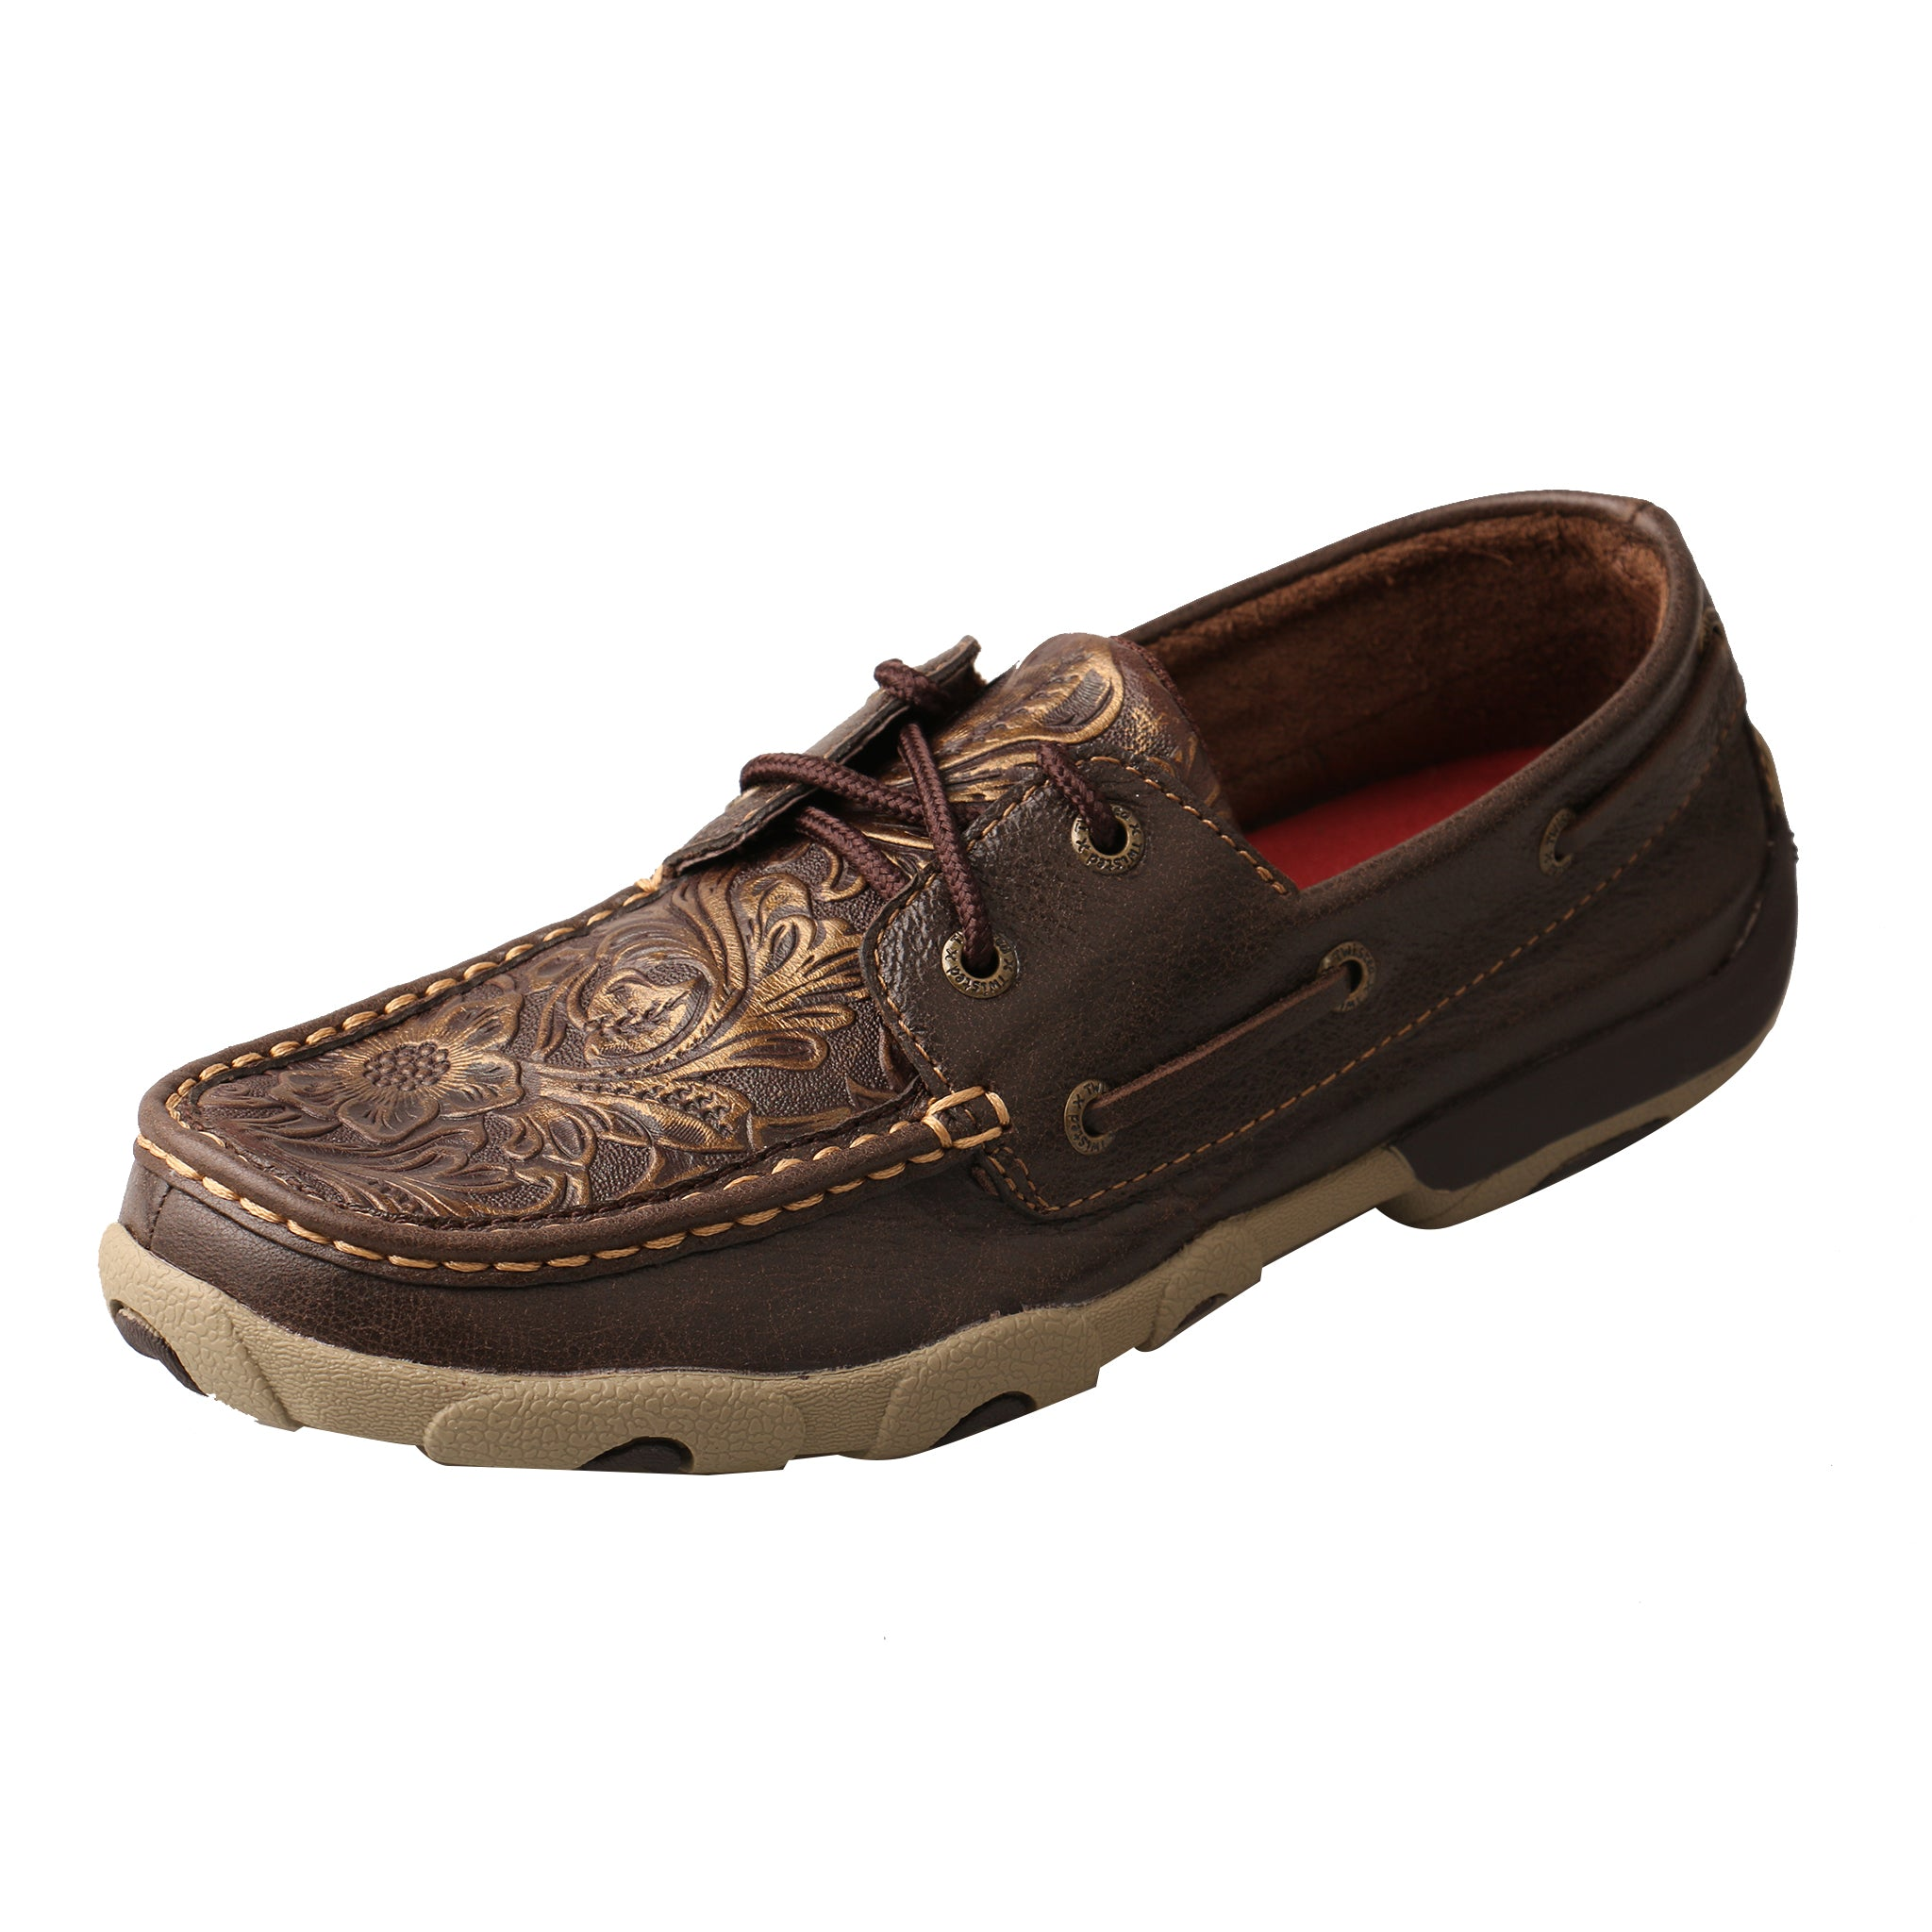 'Twisted X' WDM0070 - Women's Driving Moccasin - Brown / Gold / Embossed Flower